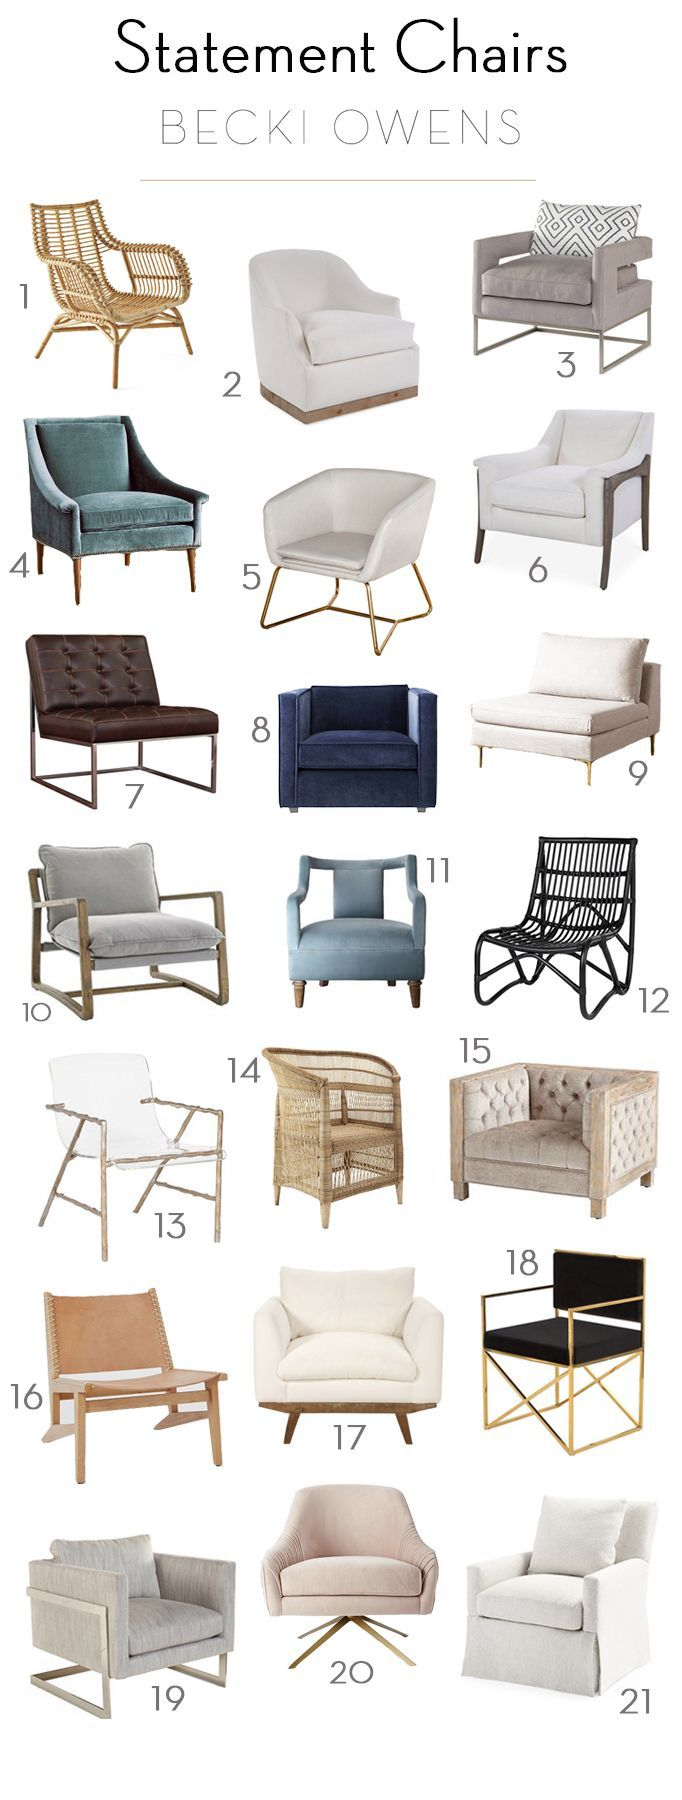 Today, I'm sharing a few seating arrangements in living rooms I've designed and a round up of 21 amazing chairs that make a statement.